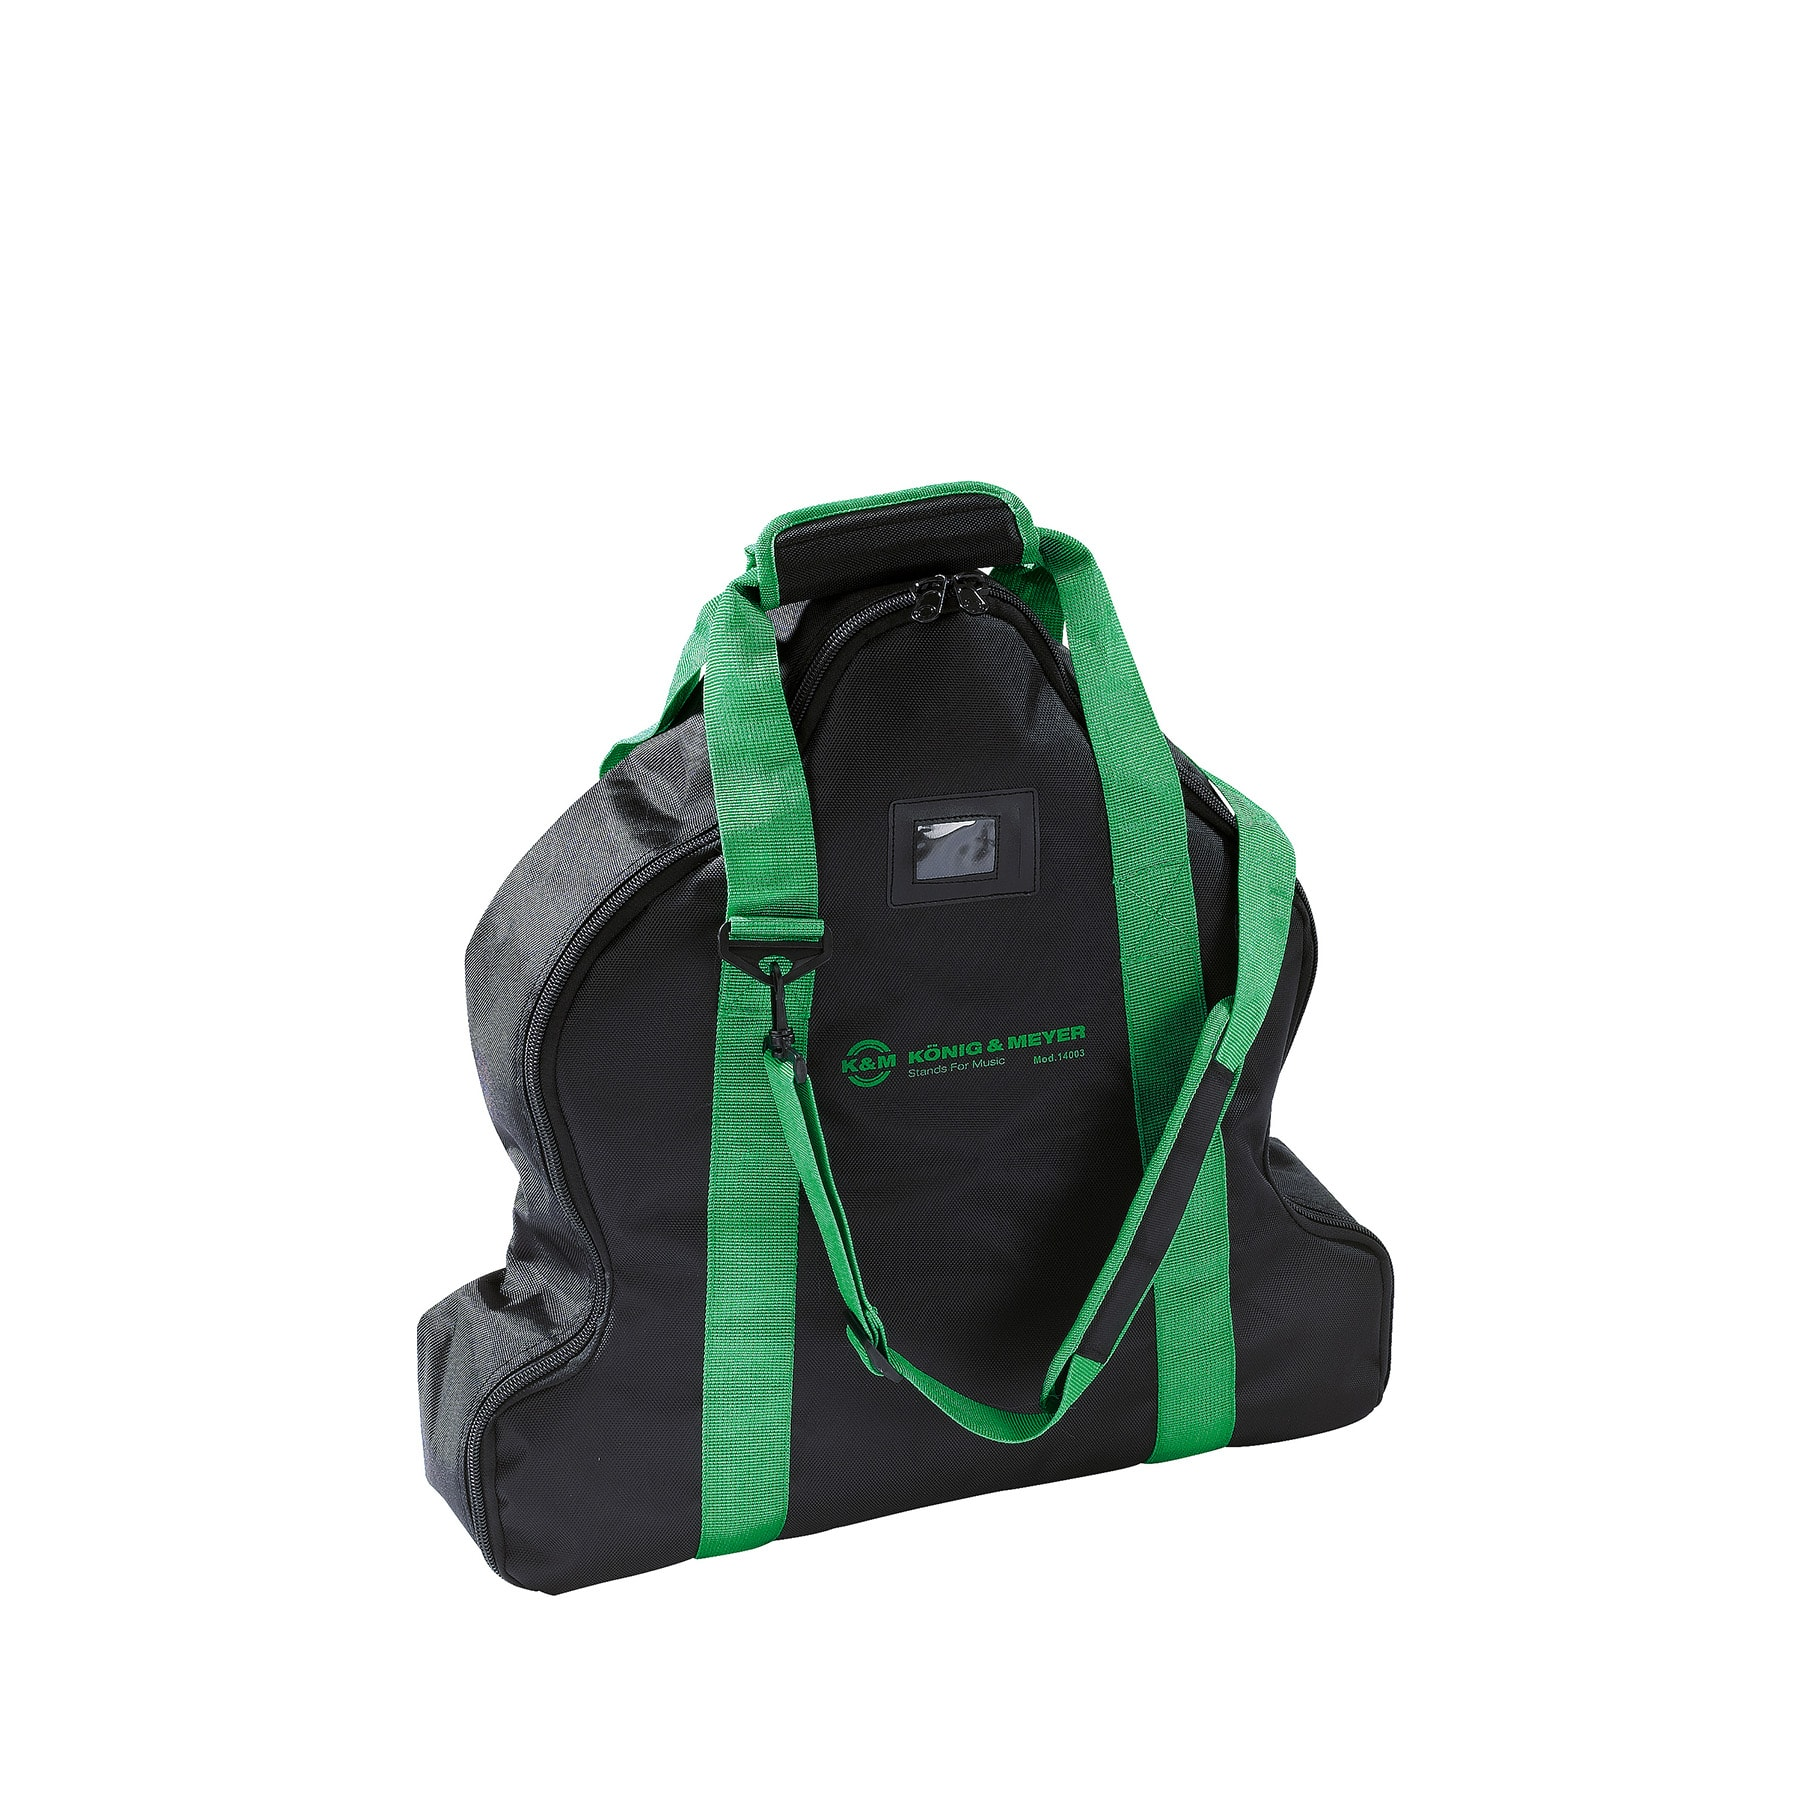 KM14003 - Carrying case for drummer's throne